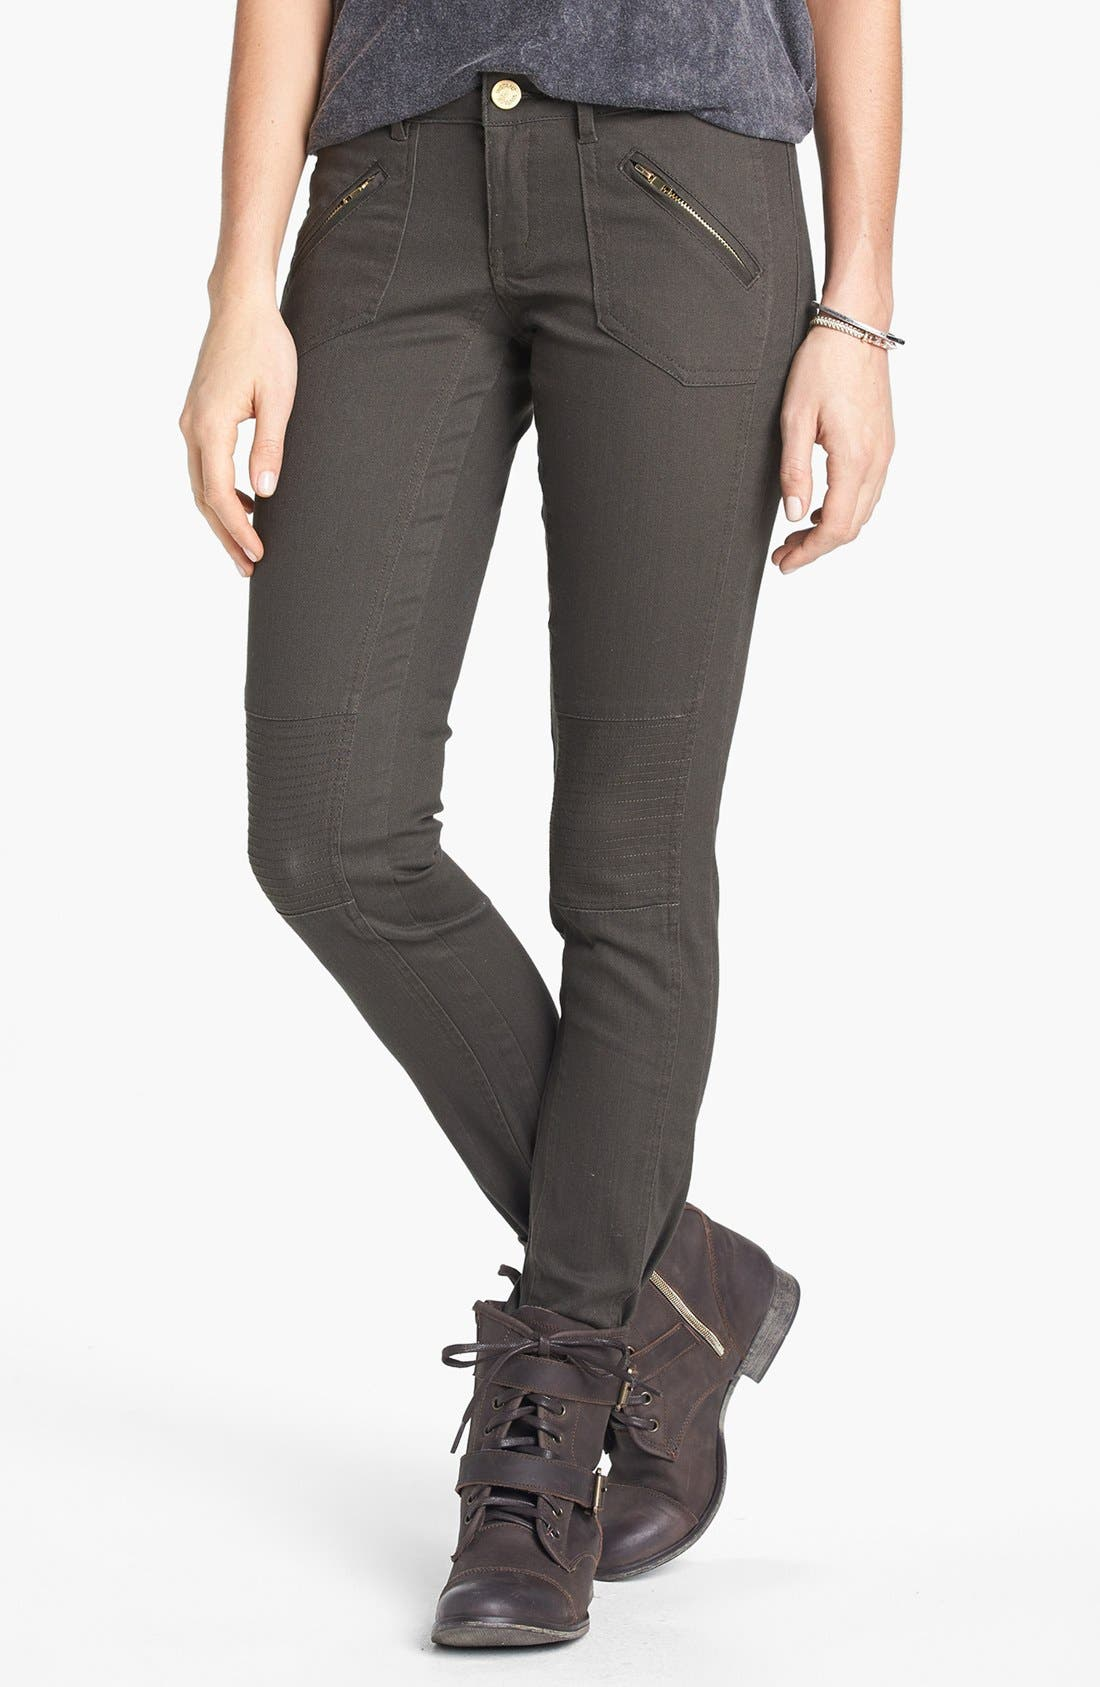 Alternate Image 1 Selected - INSTANT VINTAGE Moto Skinny Jeans (Army Green) (Juniors) (Online Only)